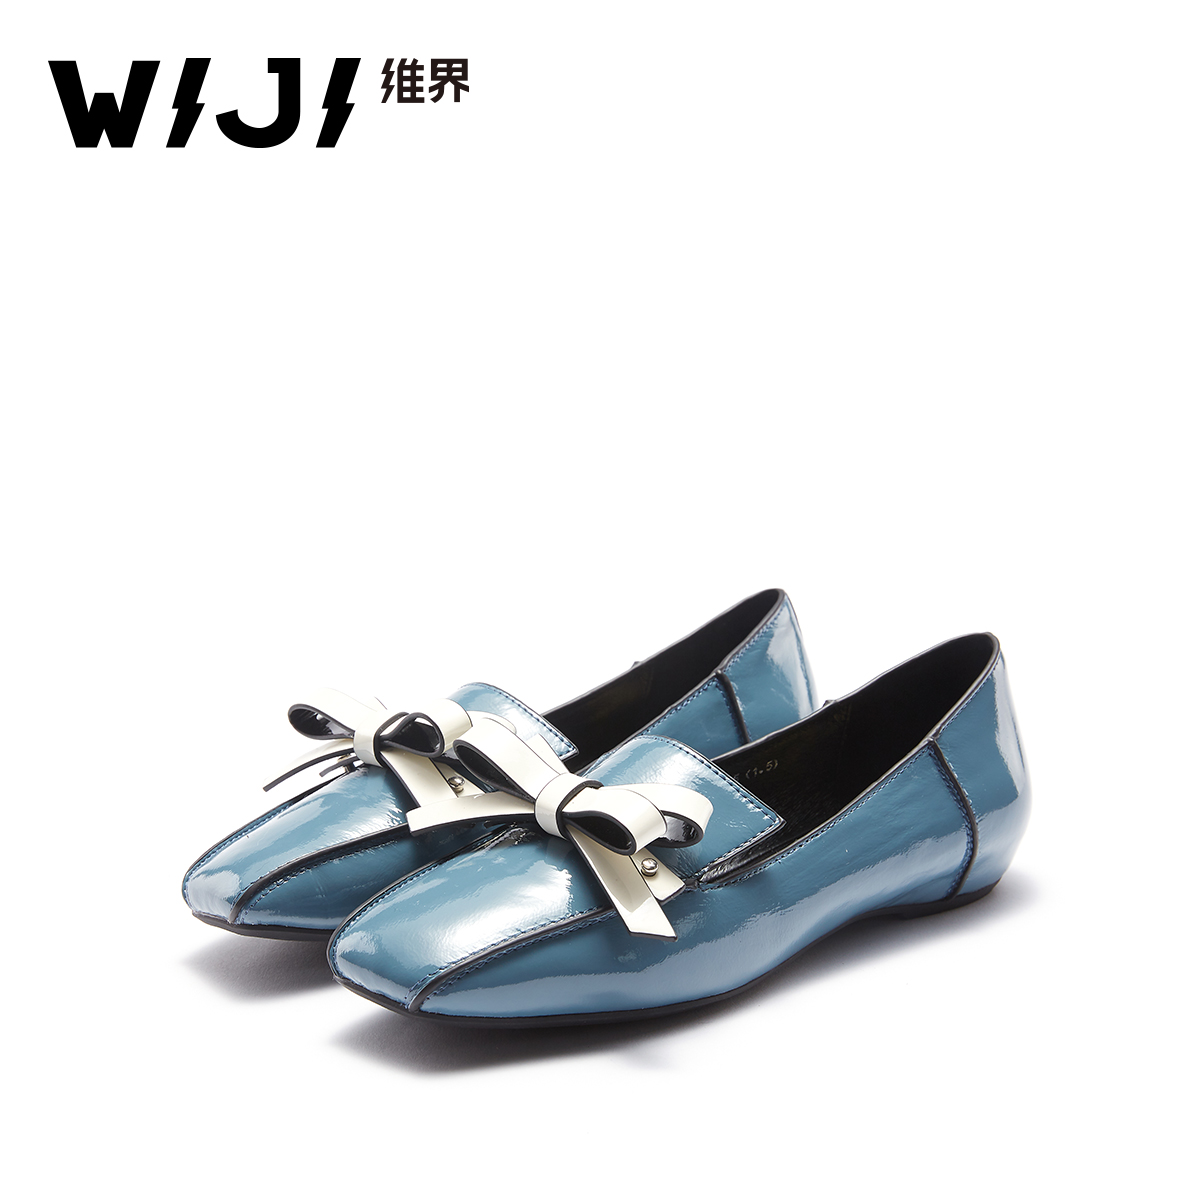 WIJI dimension 2018 summer new fashion women's shoes square head bow one foot Lok Fu shoes college wind single shoes